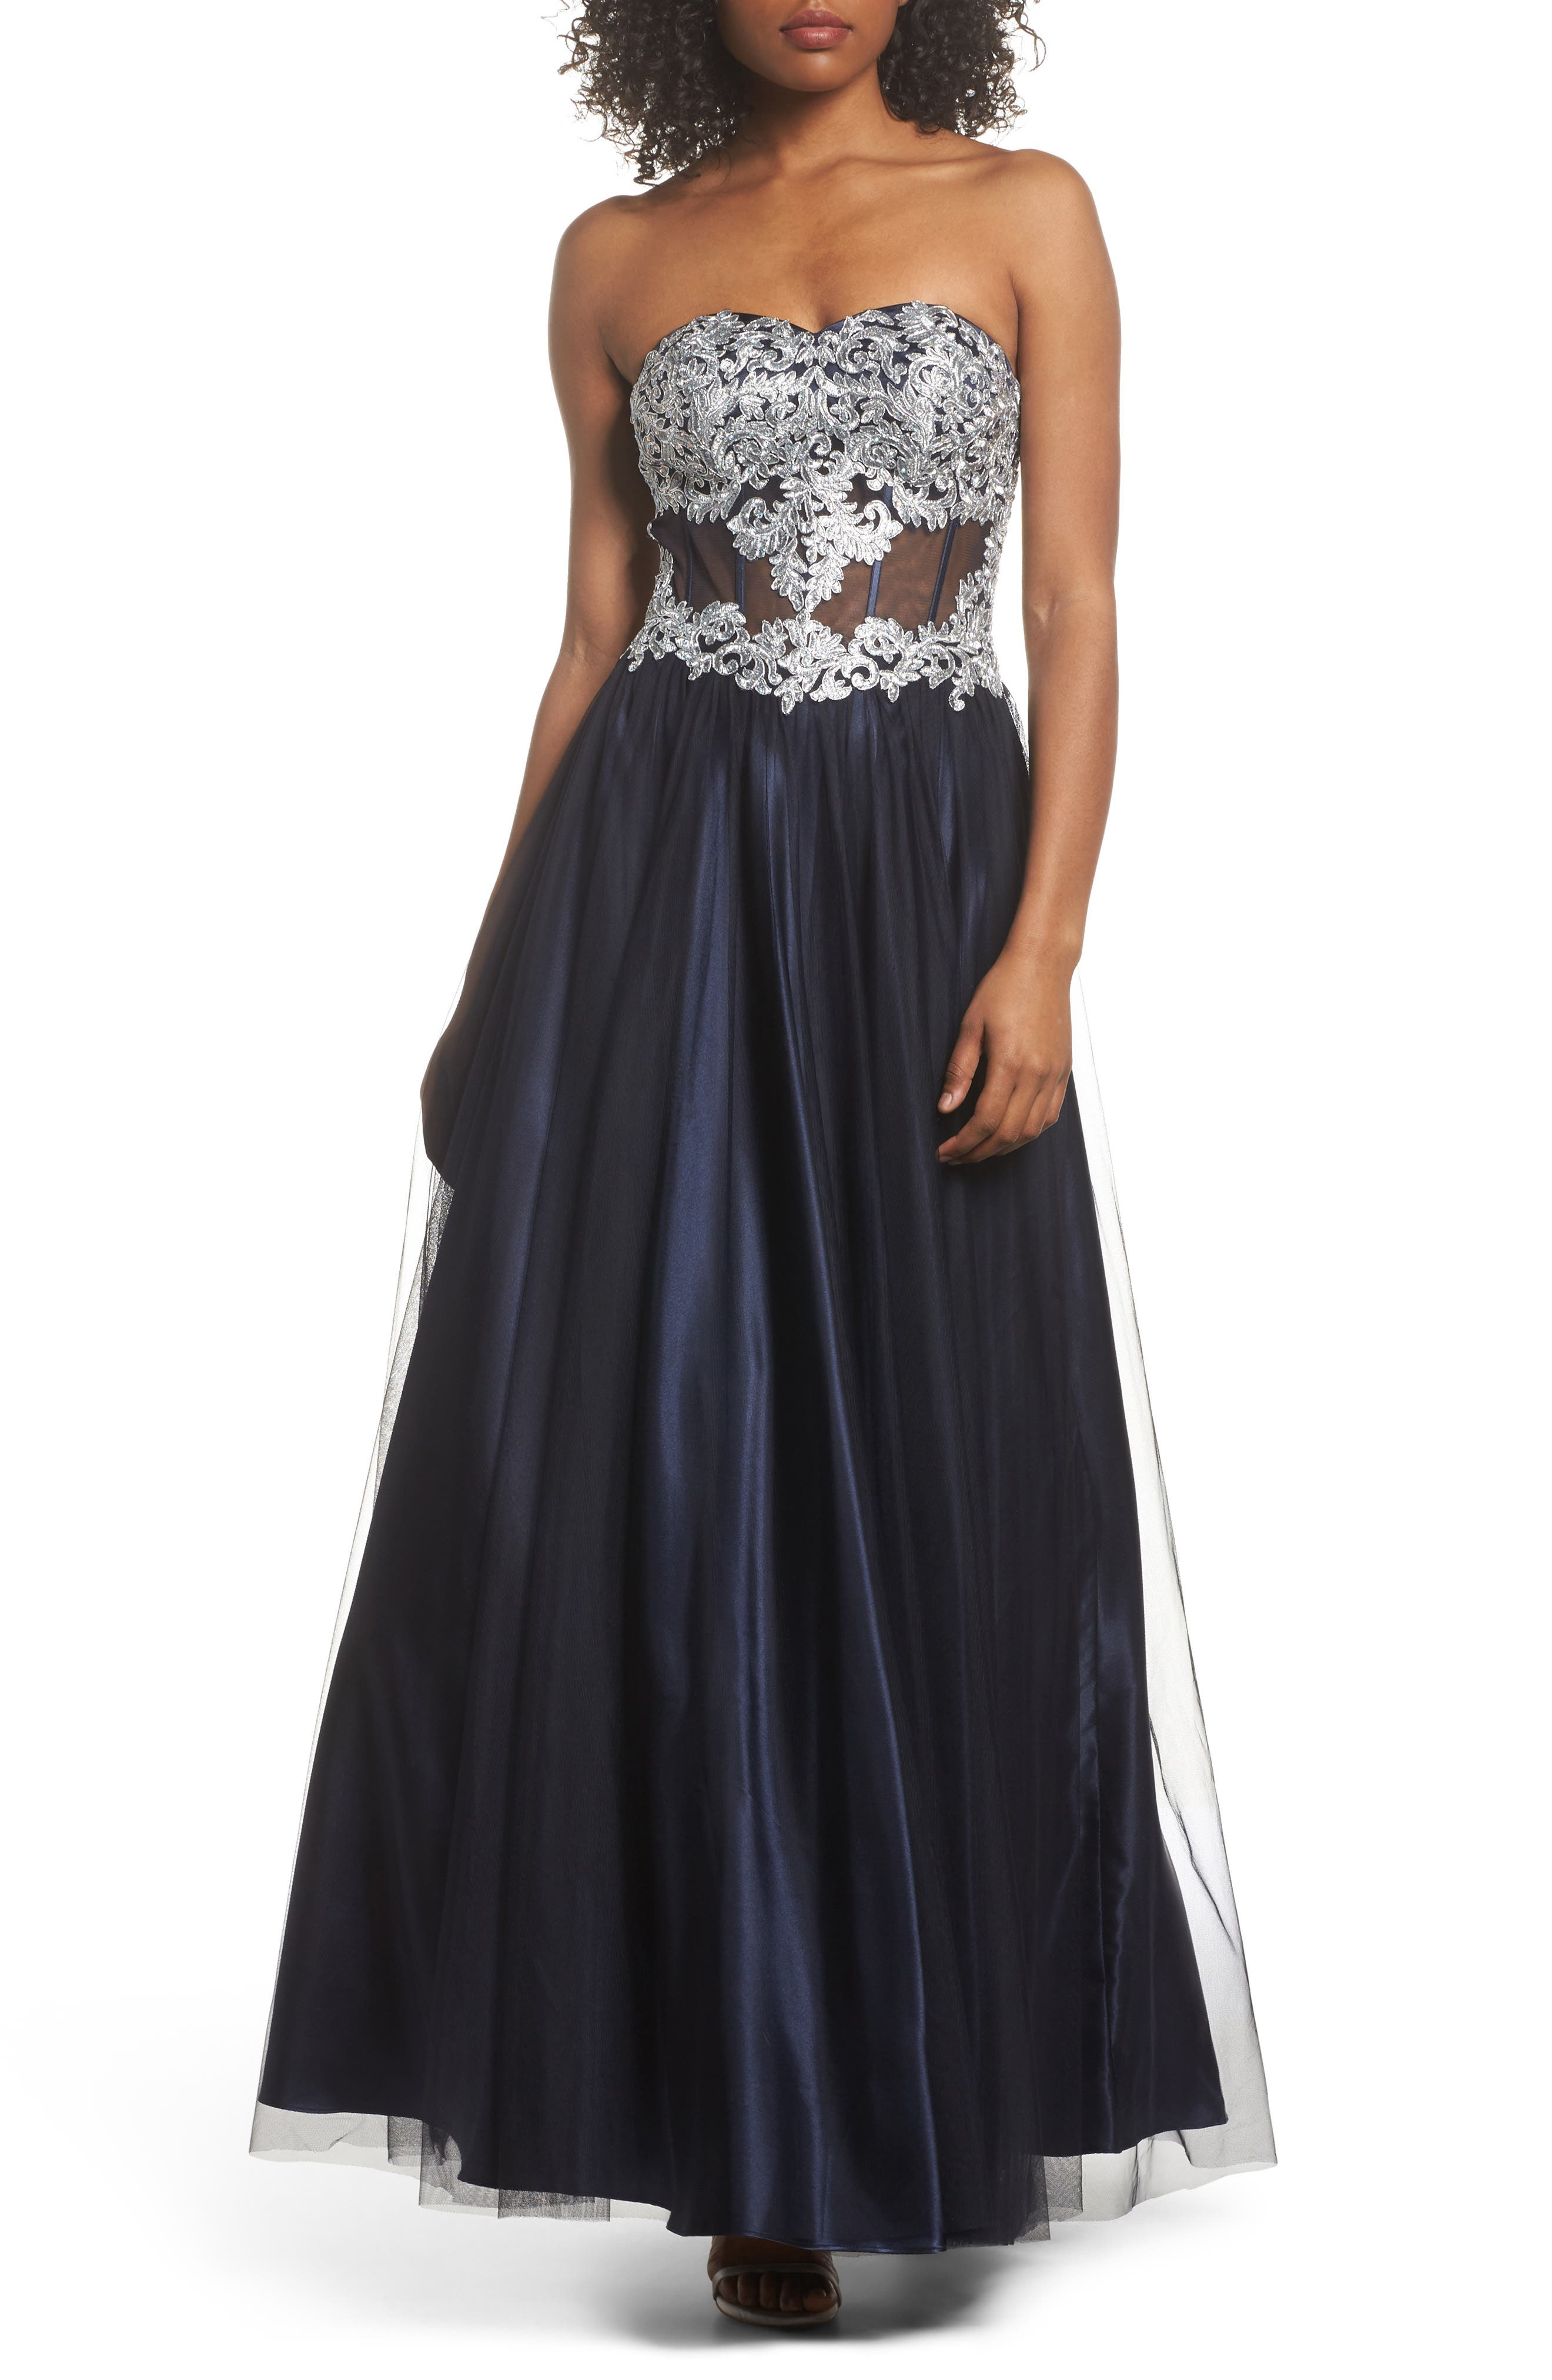 Embellished Corset Ballgown,                         Main,                         color, Navy/ Silver